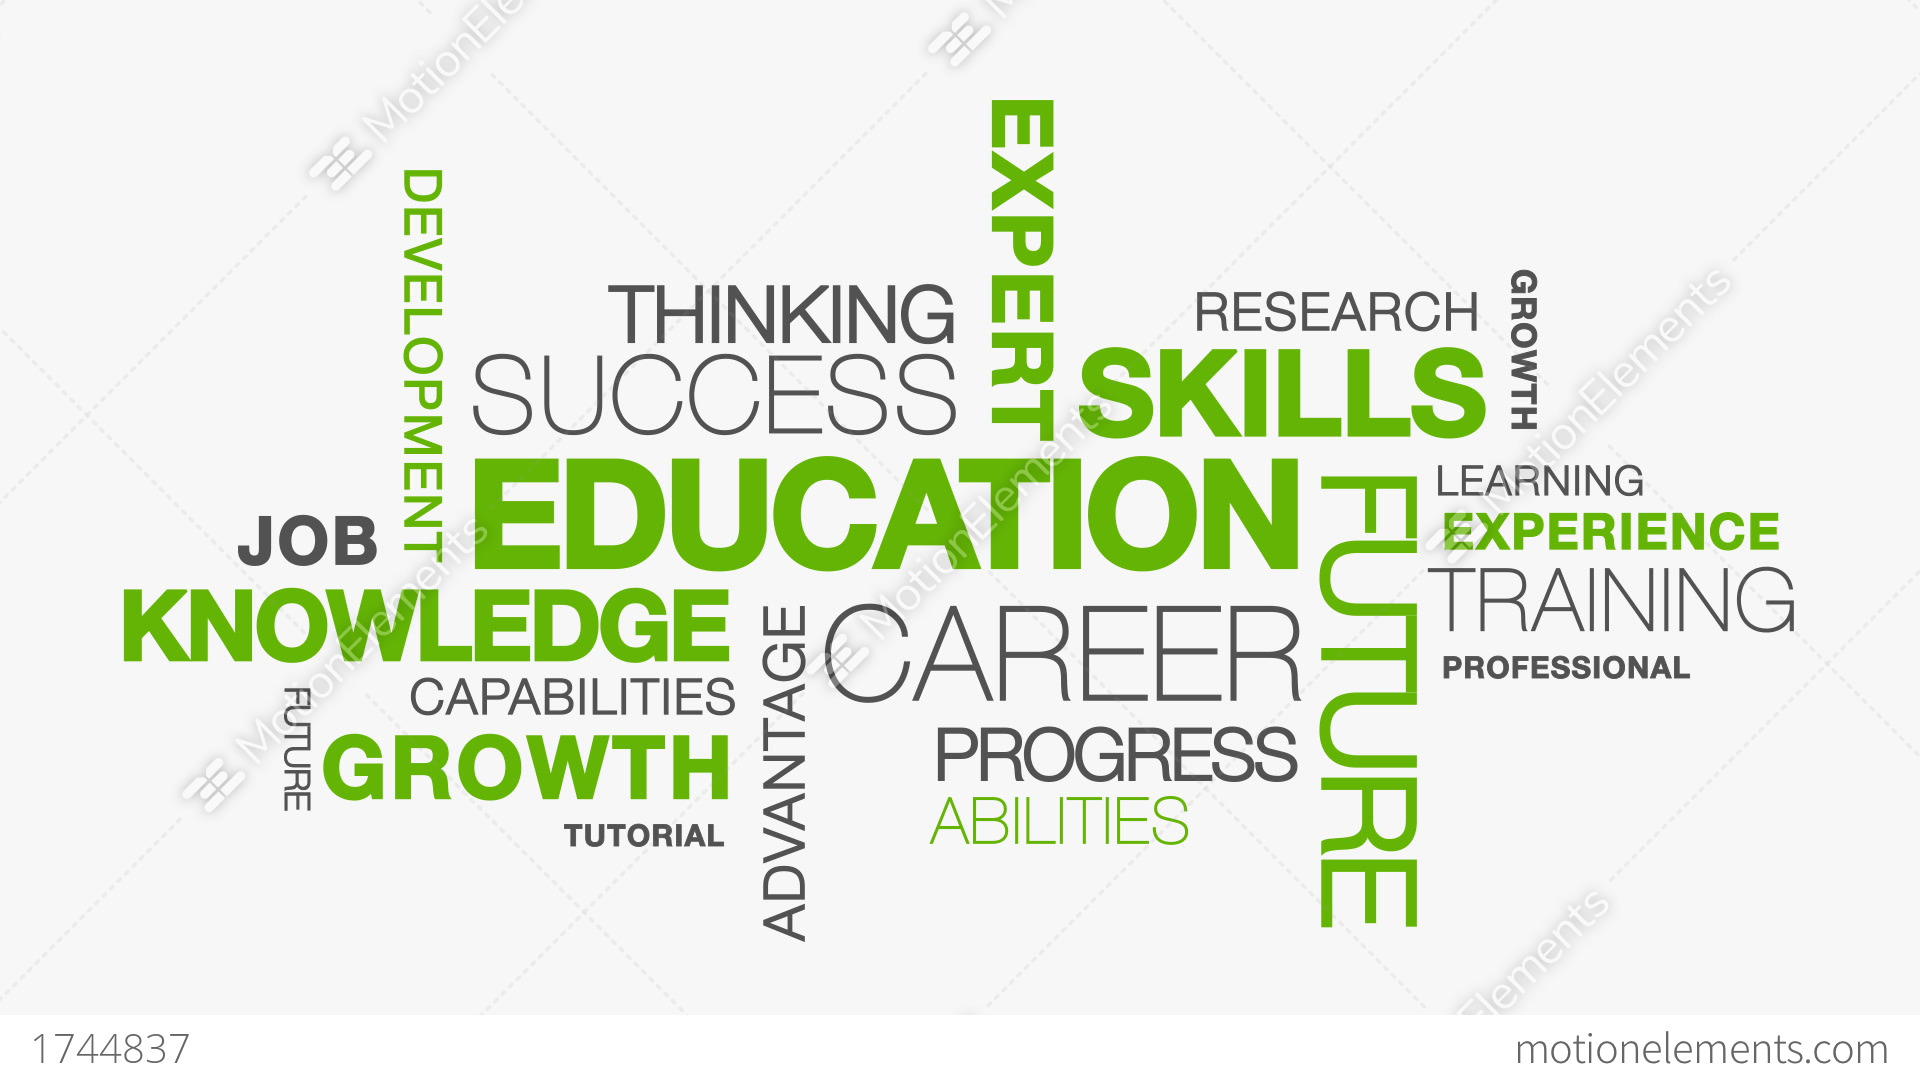 me1744837-education-word-cloud-text-animation-hd-a0289.jpg